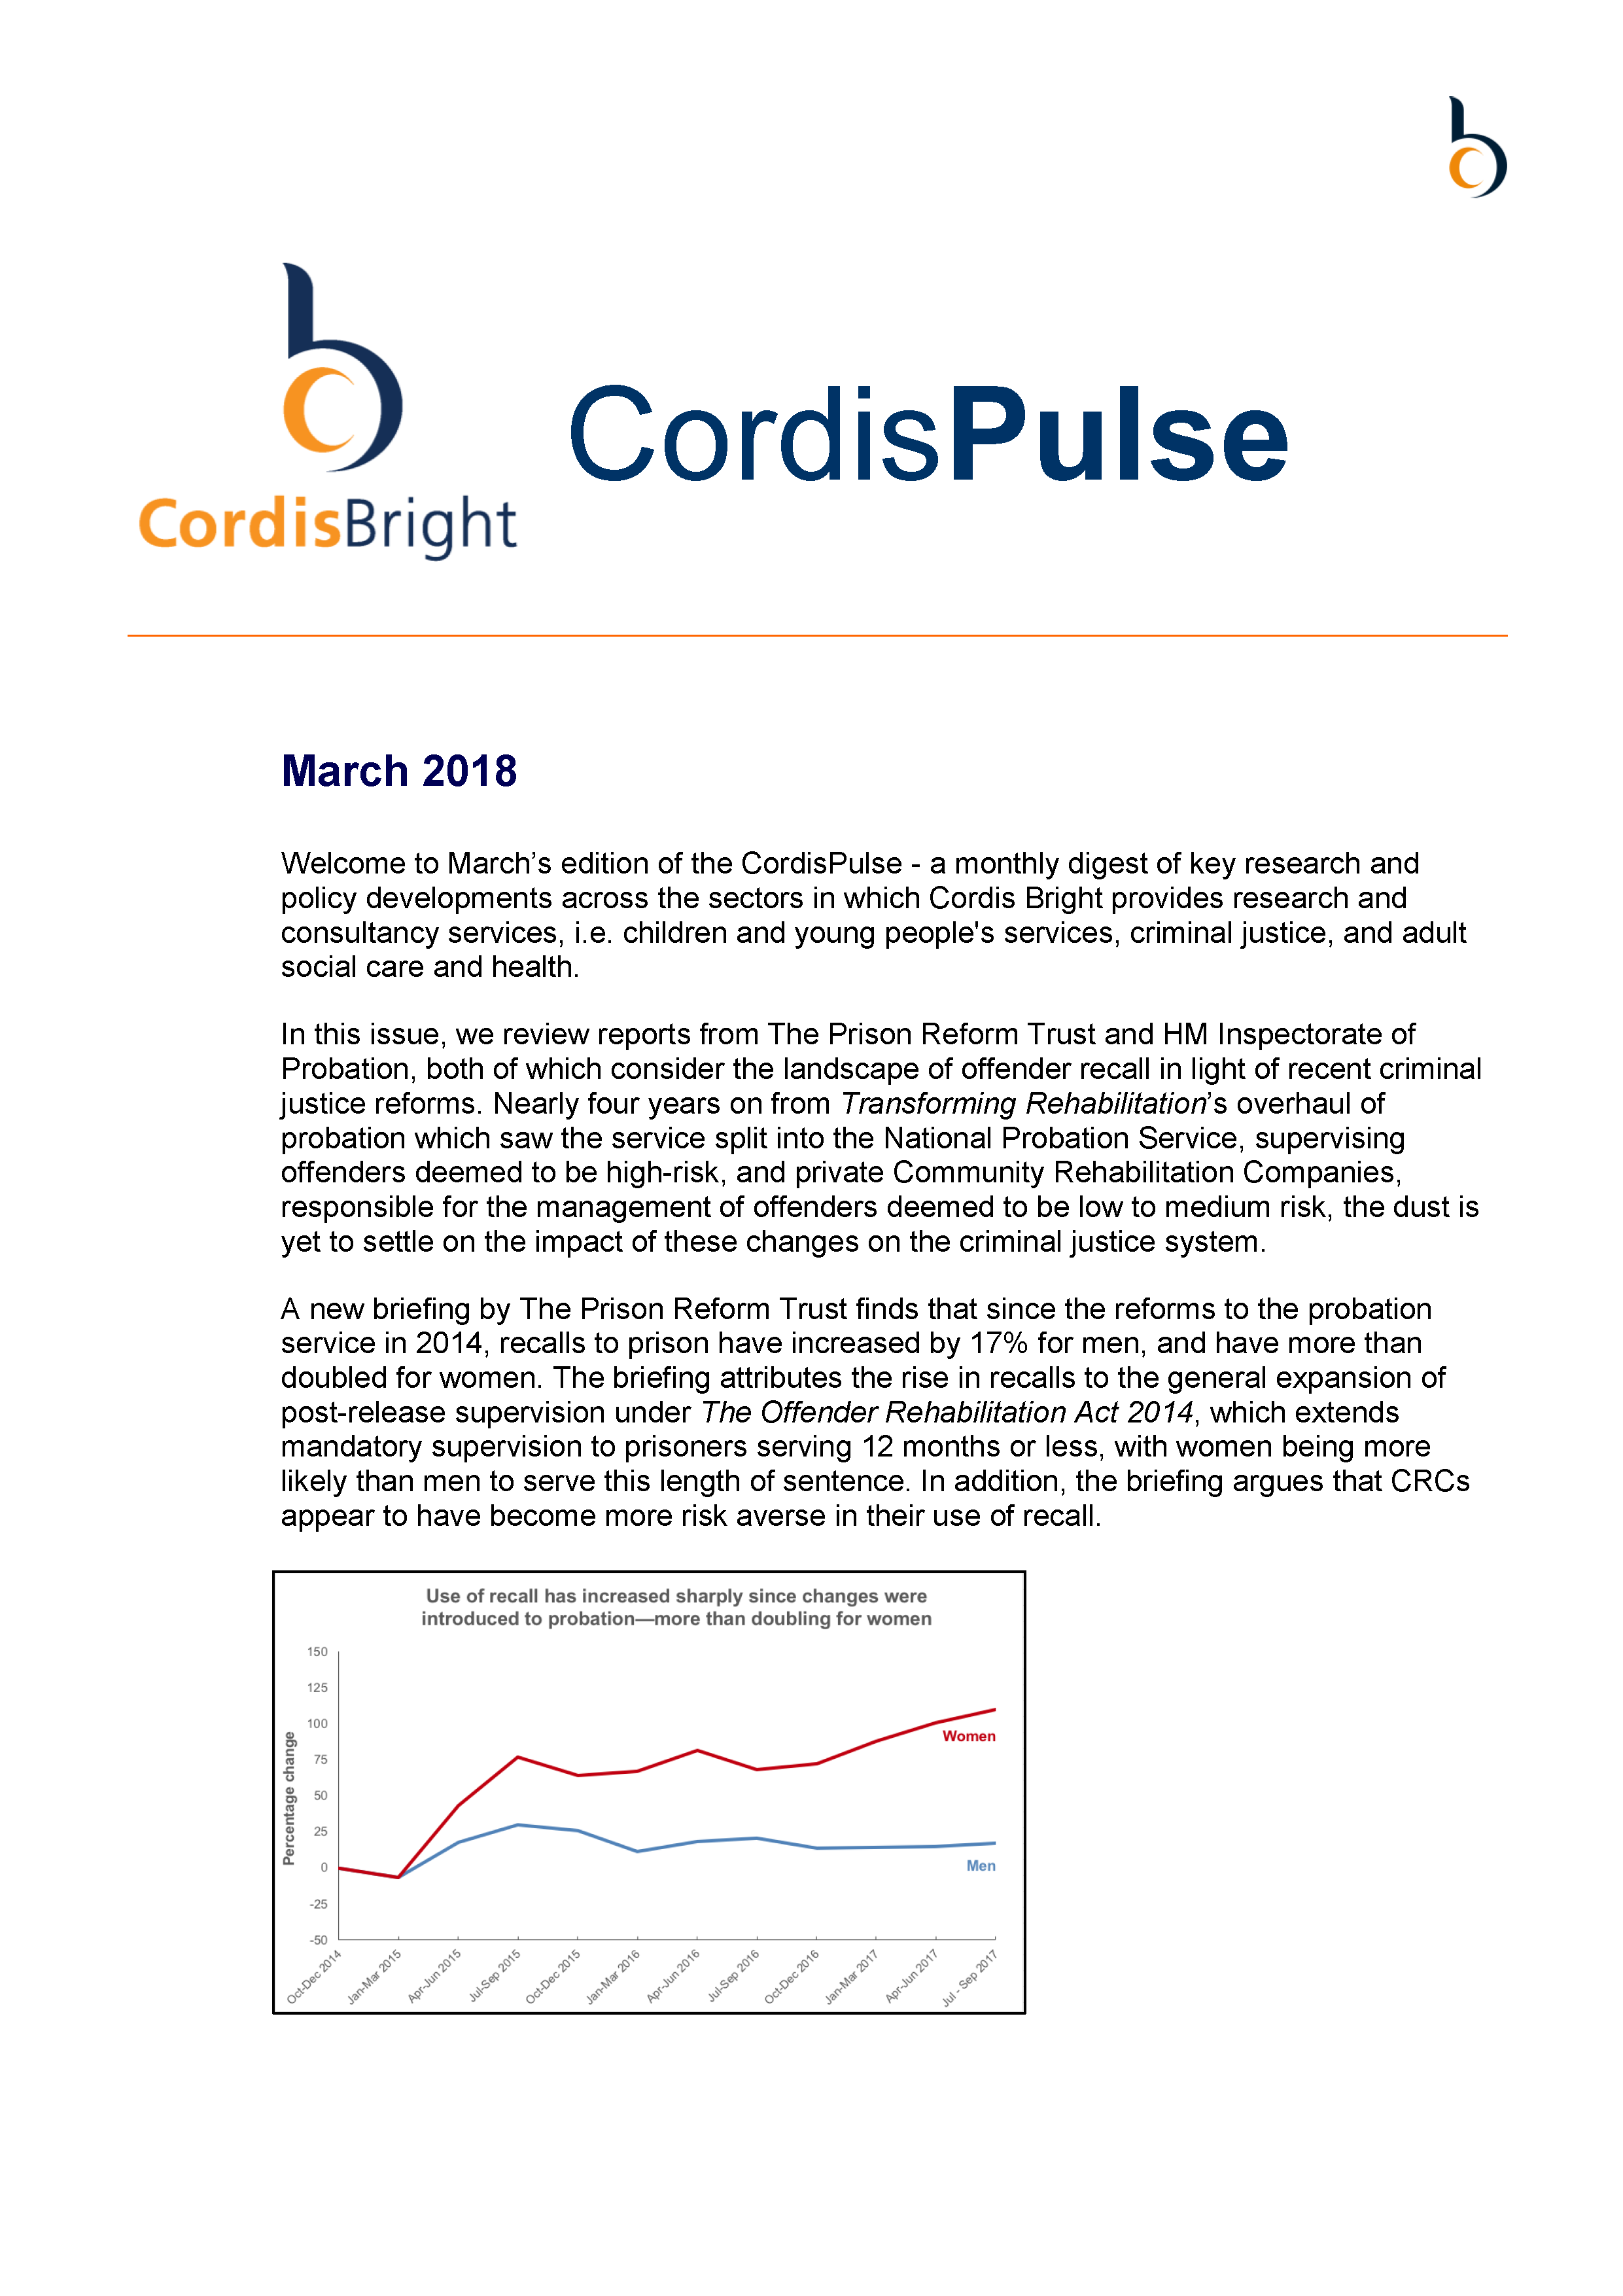 Cordis Pulse: March 2018